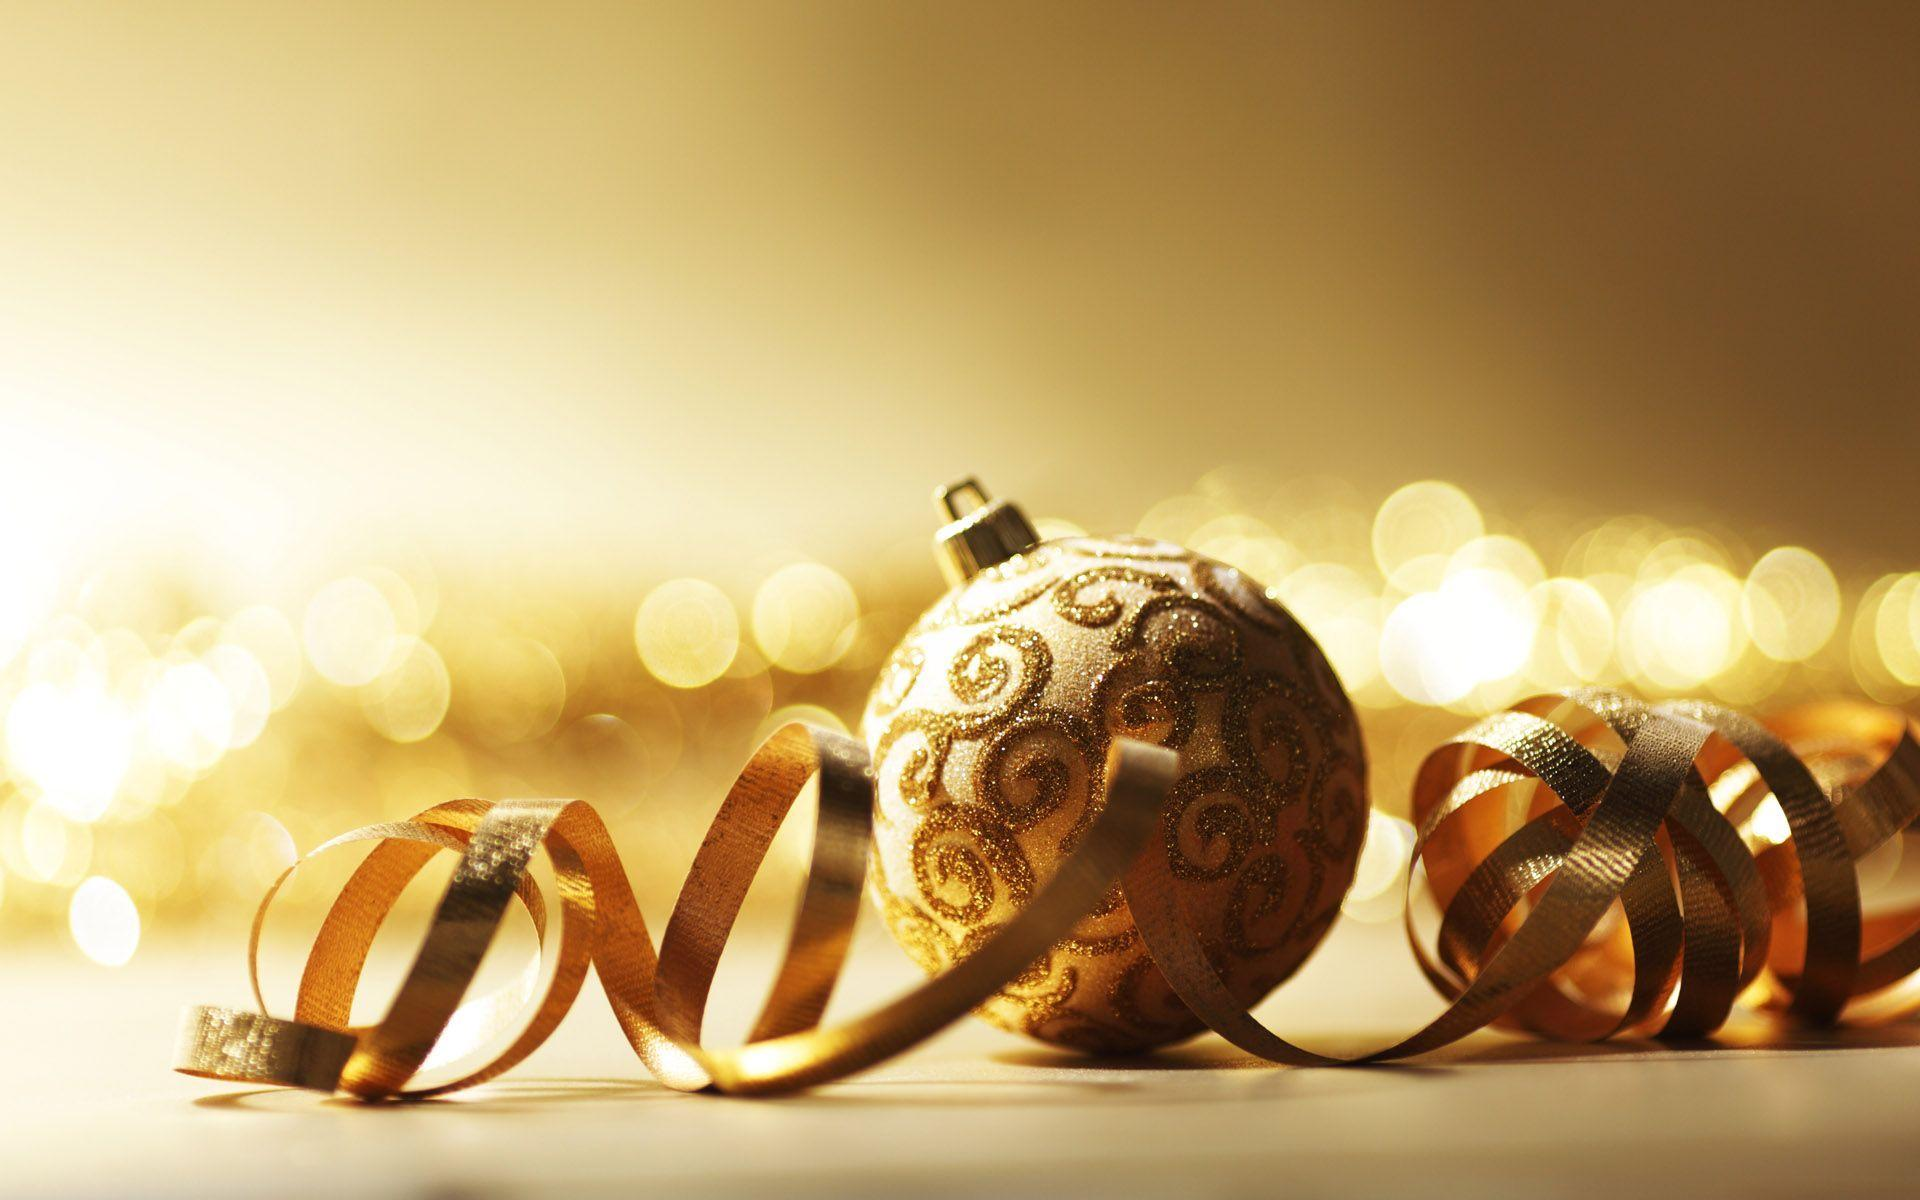 Xmas Stuff For > Gold Christmas Ornaments Wallpaper